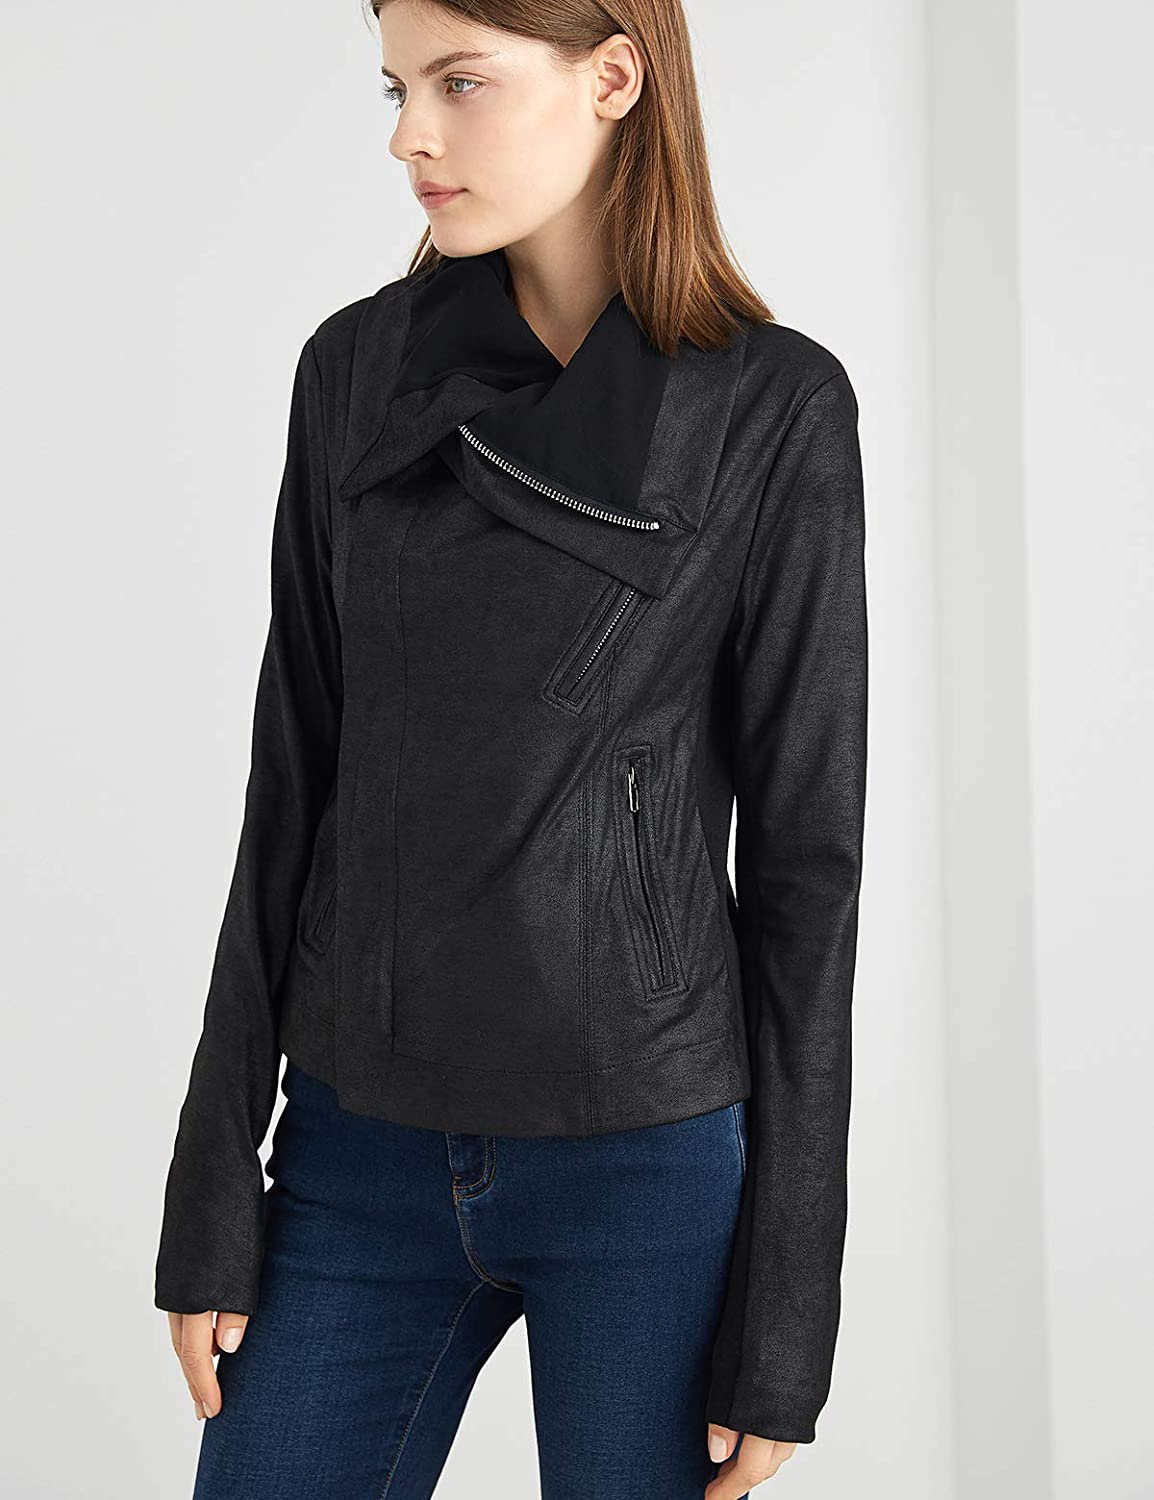 ANNA/&CHRIS Escalier Womens Faux Leather Jacket Zipper Open Front Motorcycle Bike Coat with Pockets